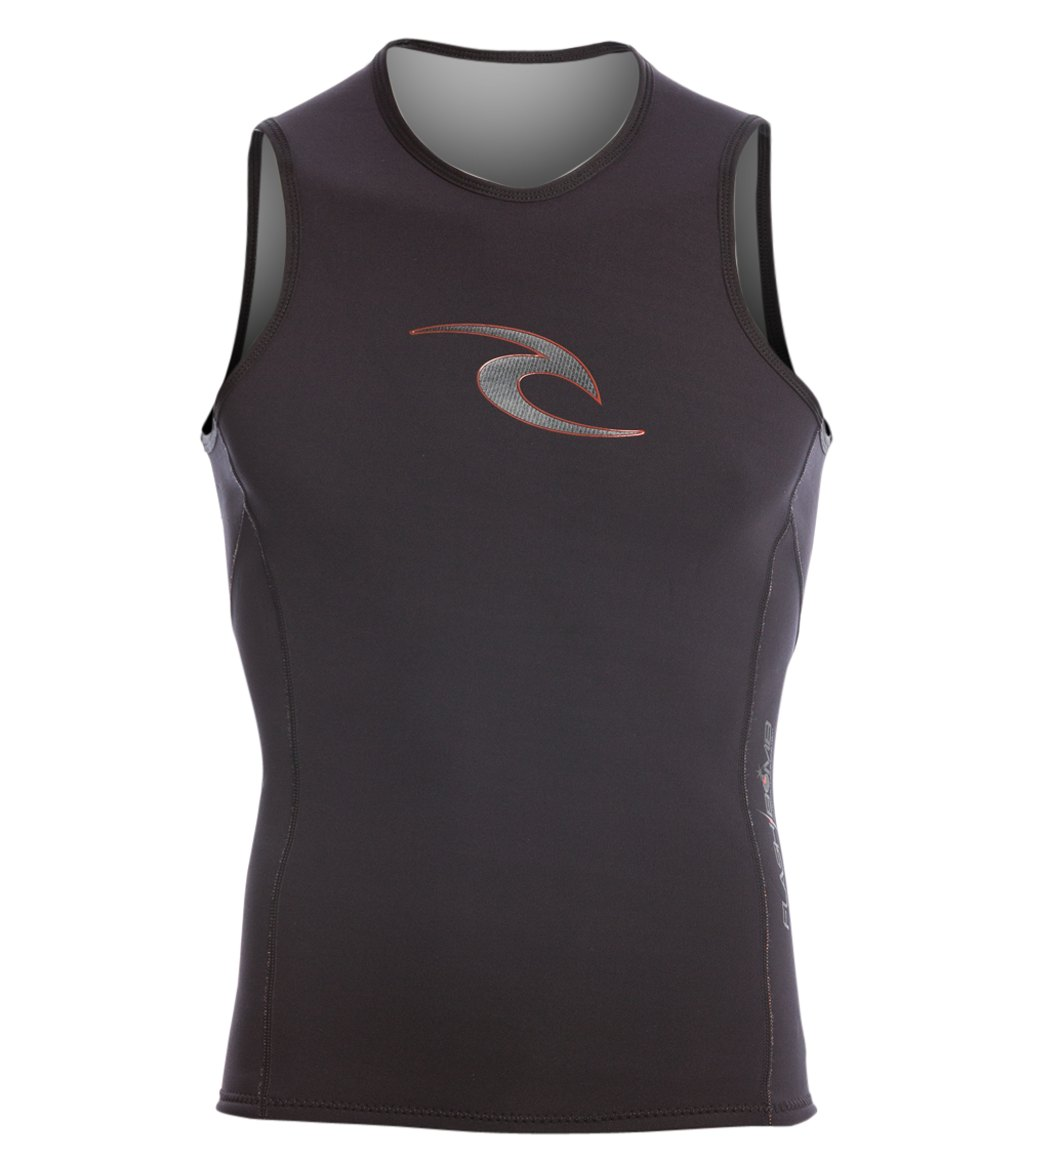 13d57707fb Rip Curl Men s Flashbomb Sleeveless Wetsuit Vest at SwimOutlet.com - Free  Shipping